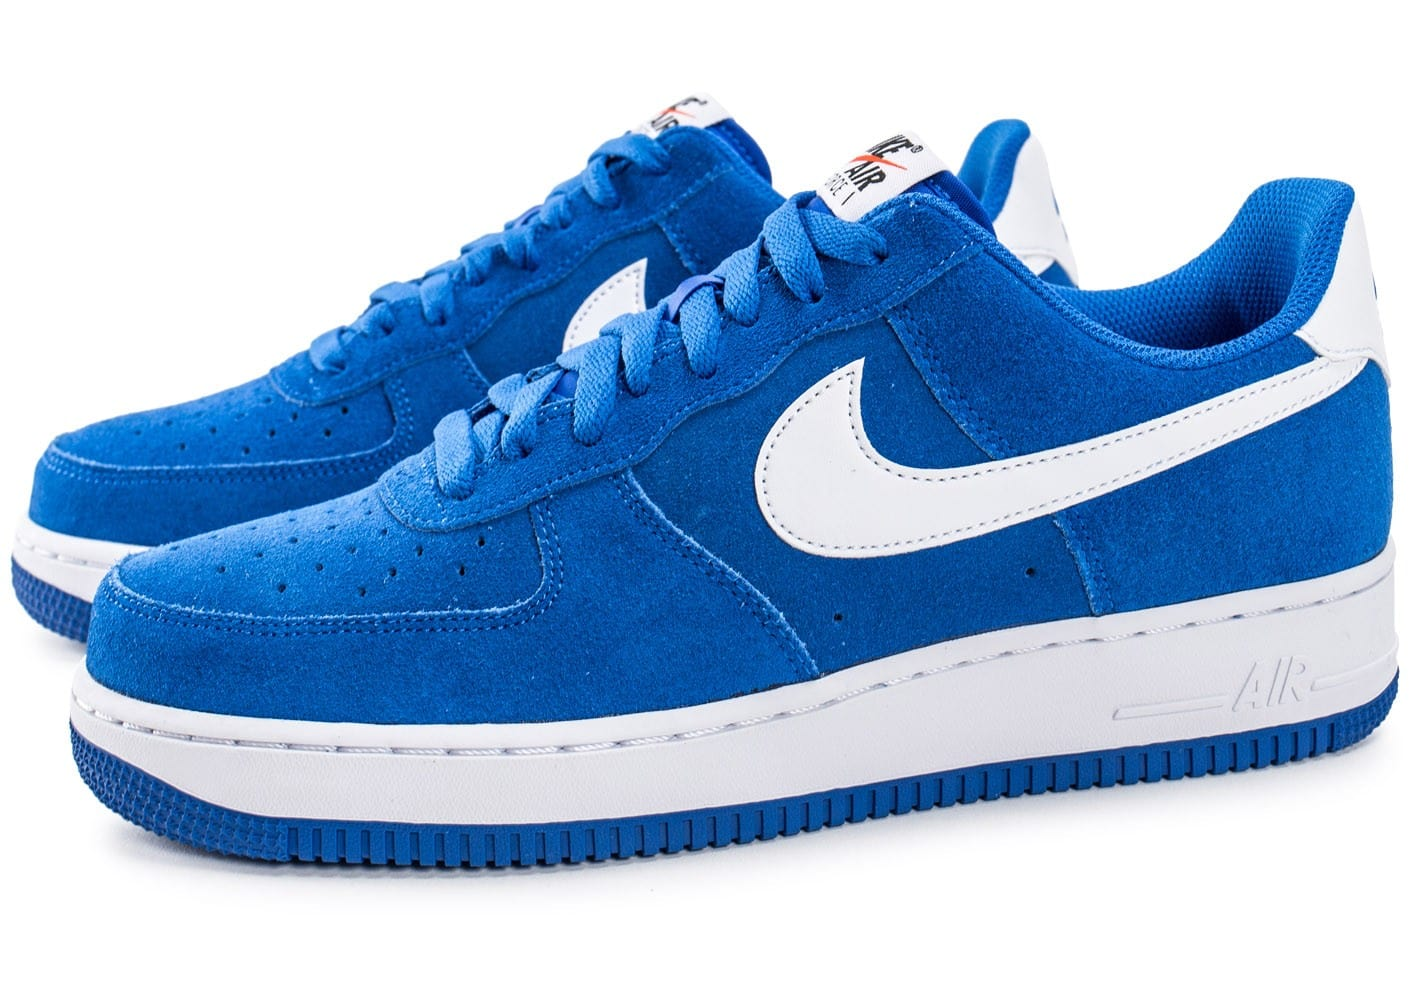 nike air force 1 suede bleu chaussures homme chausport. Black Bedroom Furniture Sets. Home Design Ideas